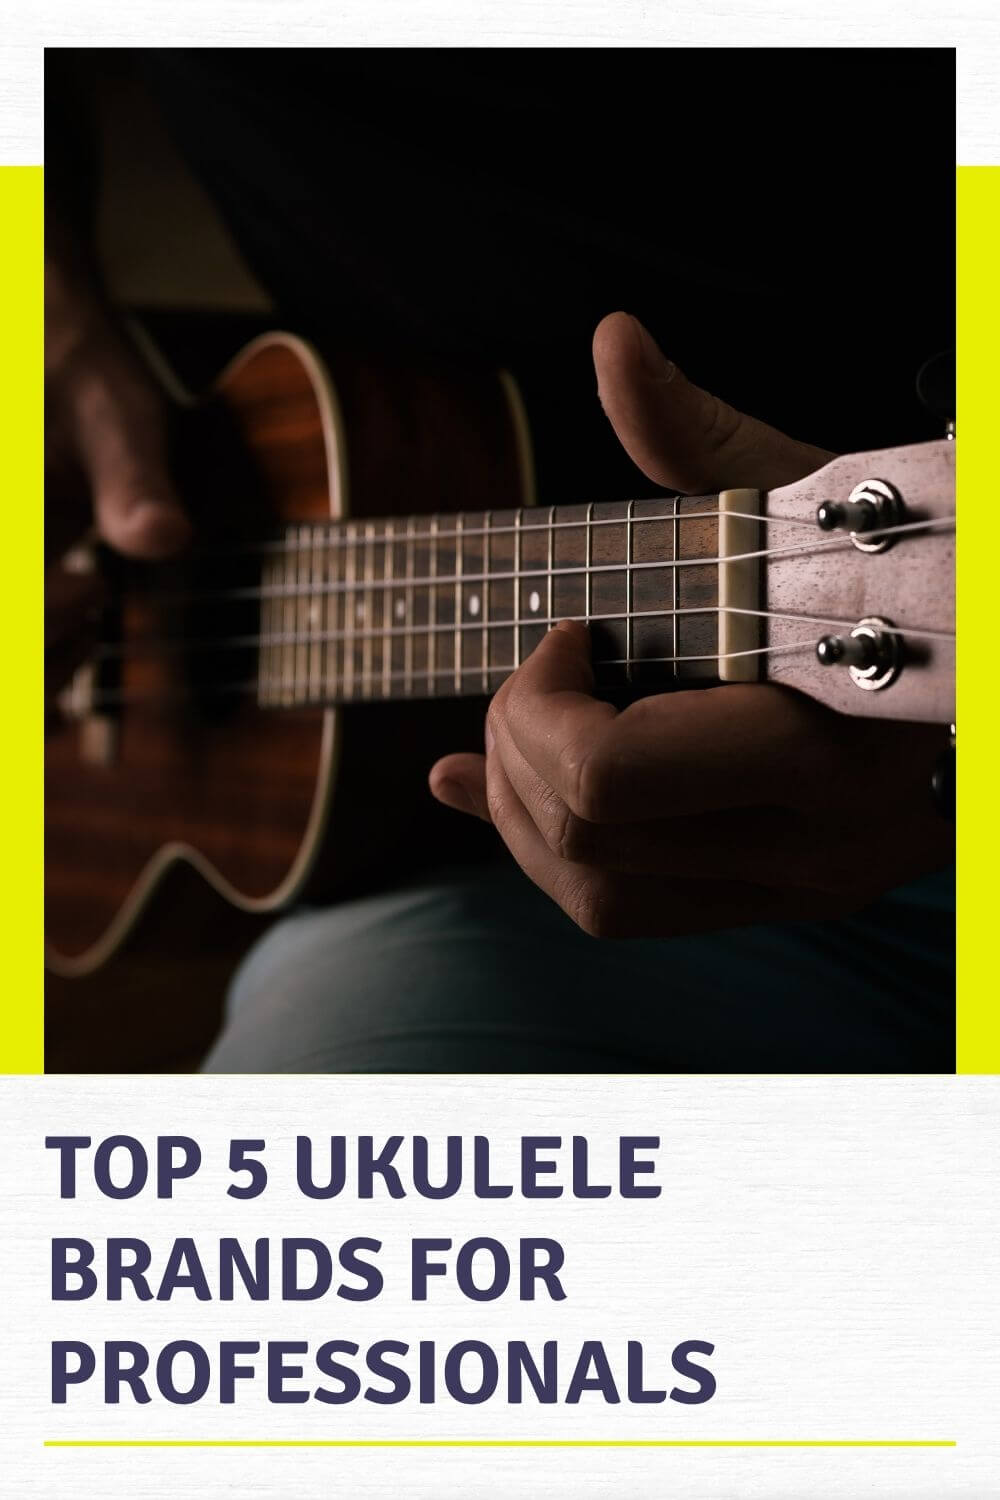 Top 5 Ukulele Brands for Professionals [+Reviews]